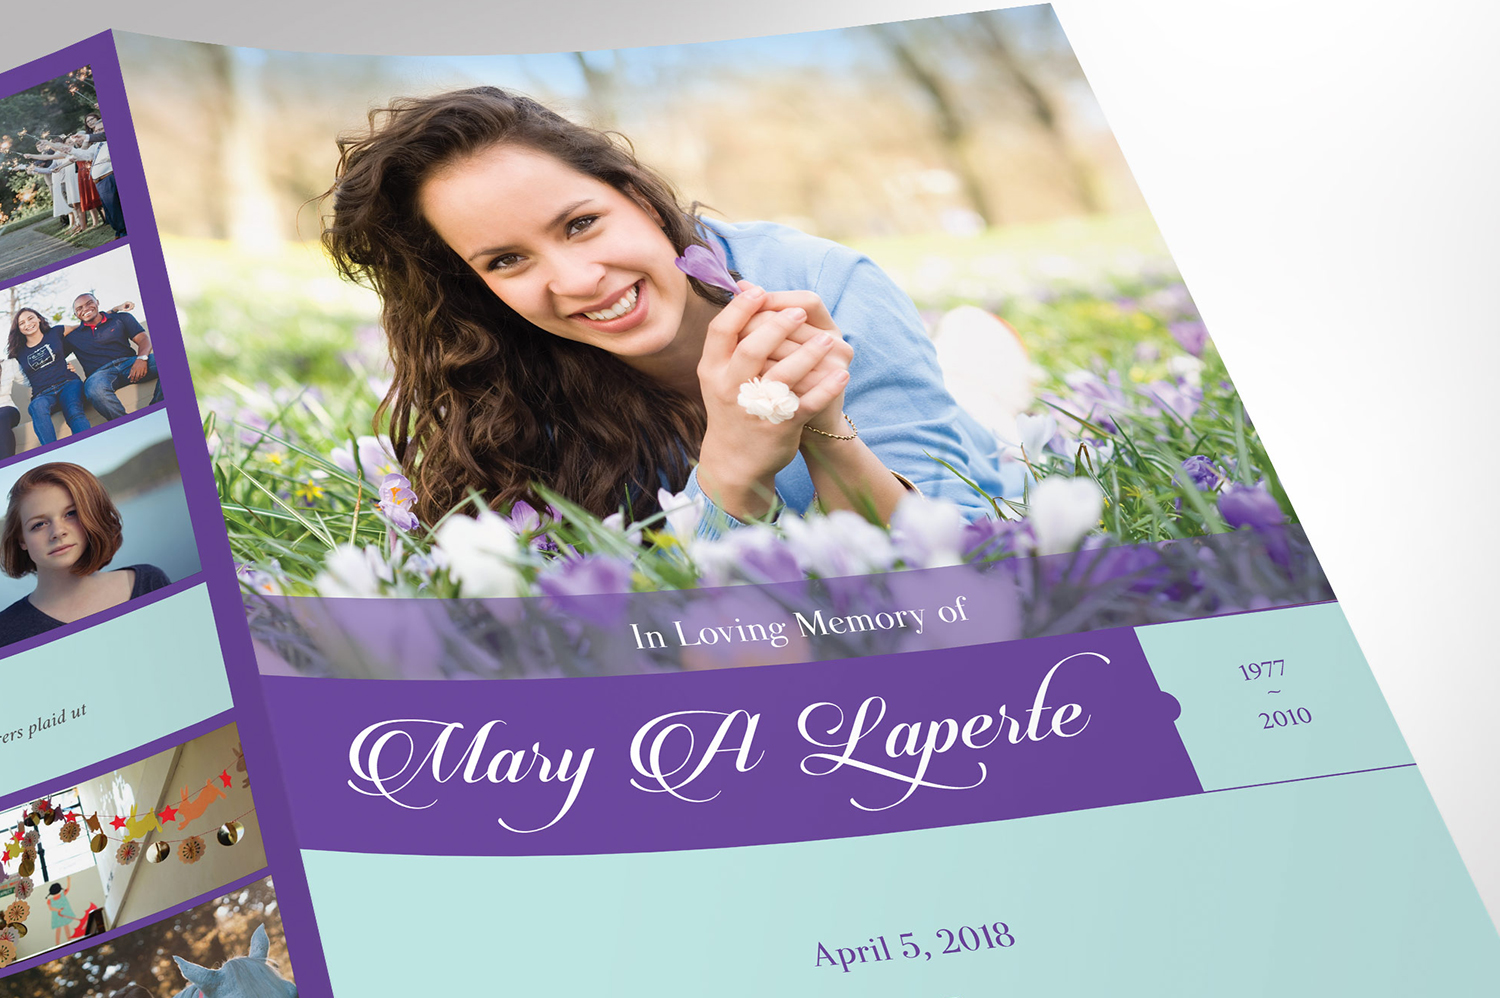 Remember Purple Teal Funeral Program Word Publisher Large example image 5